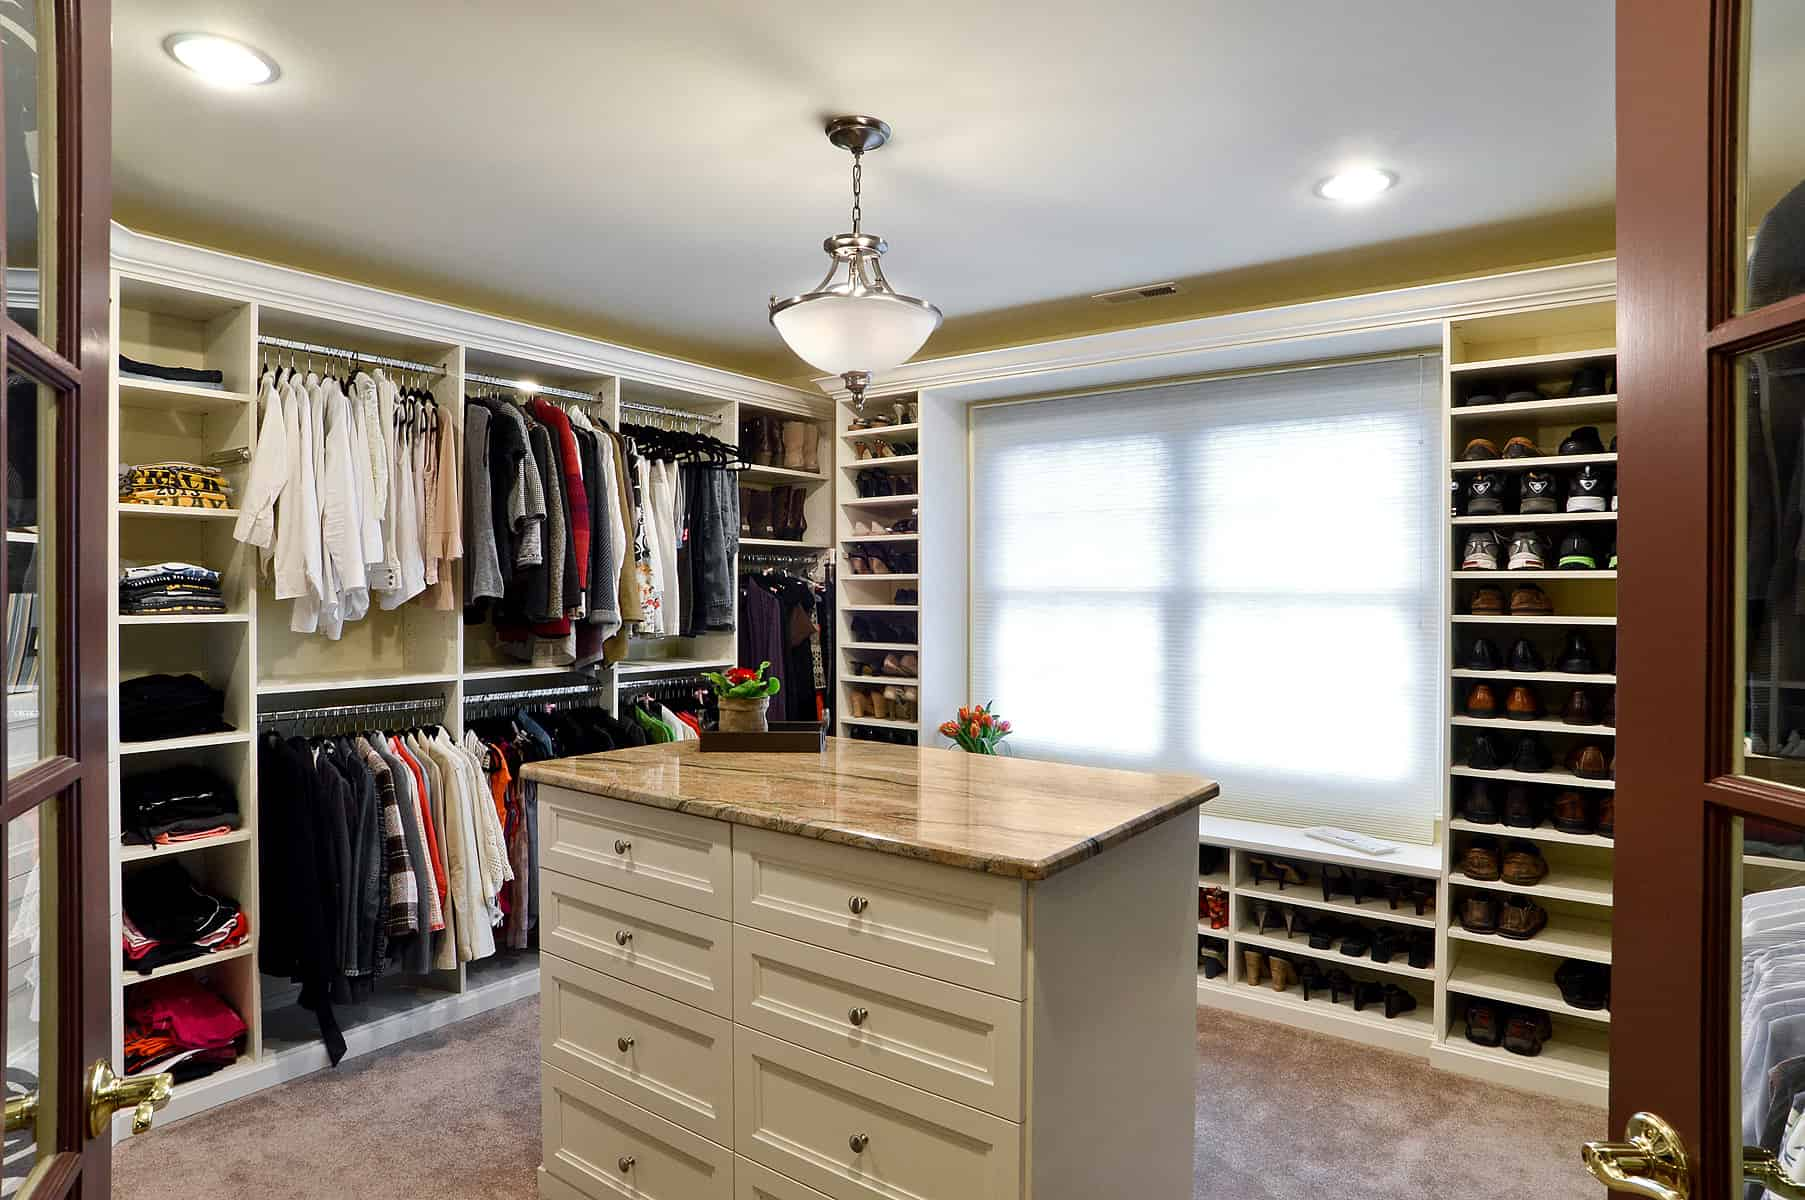 Such a grand walk-in closet can surely house all the apparels and accessories of all the family members. We see an entire wall dedicated to shoe storage while there is also a window seat for additional functionality.